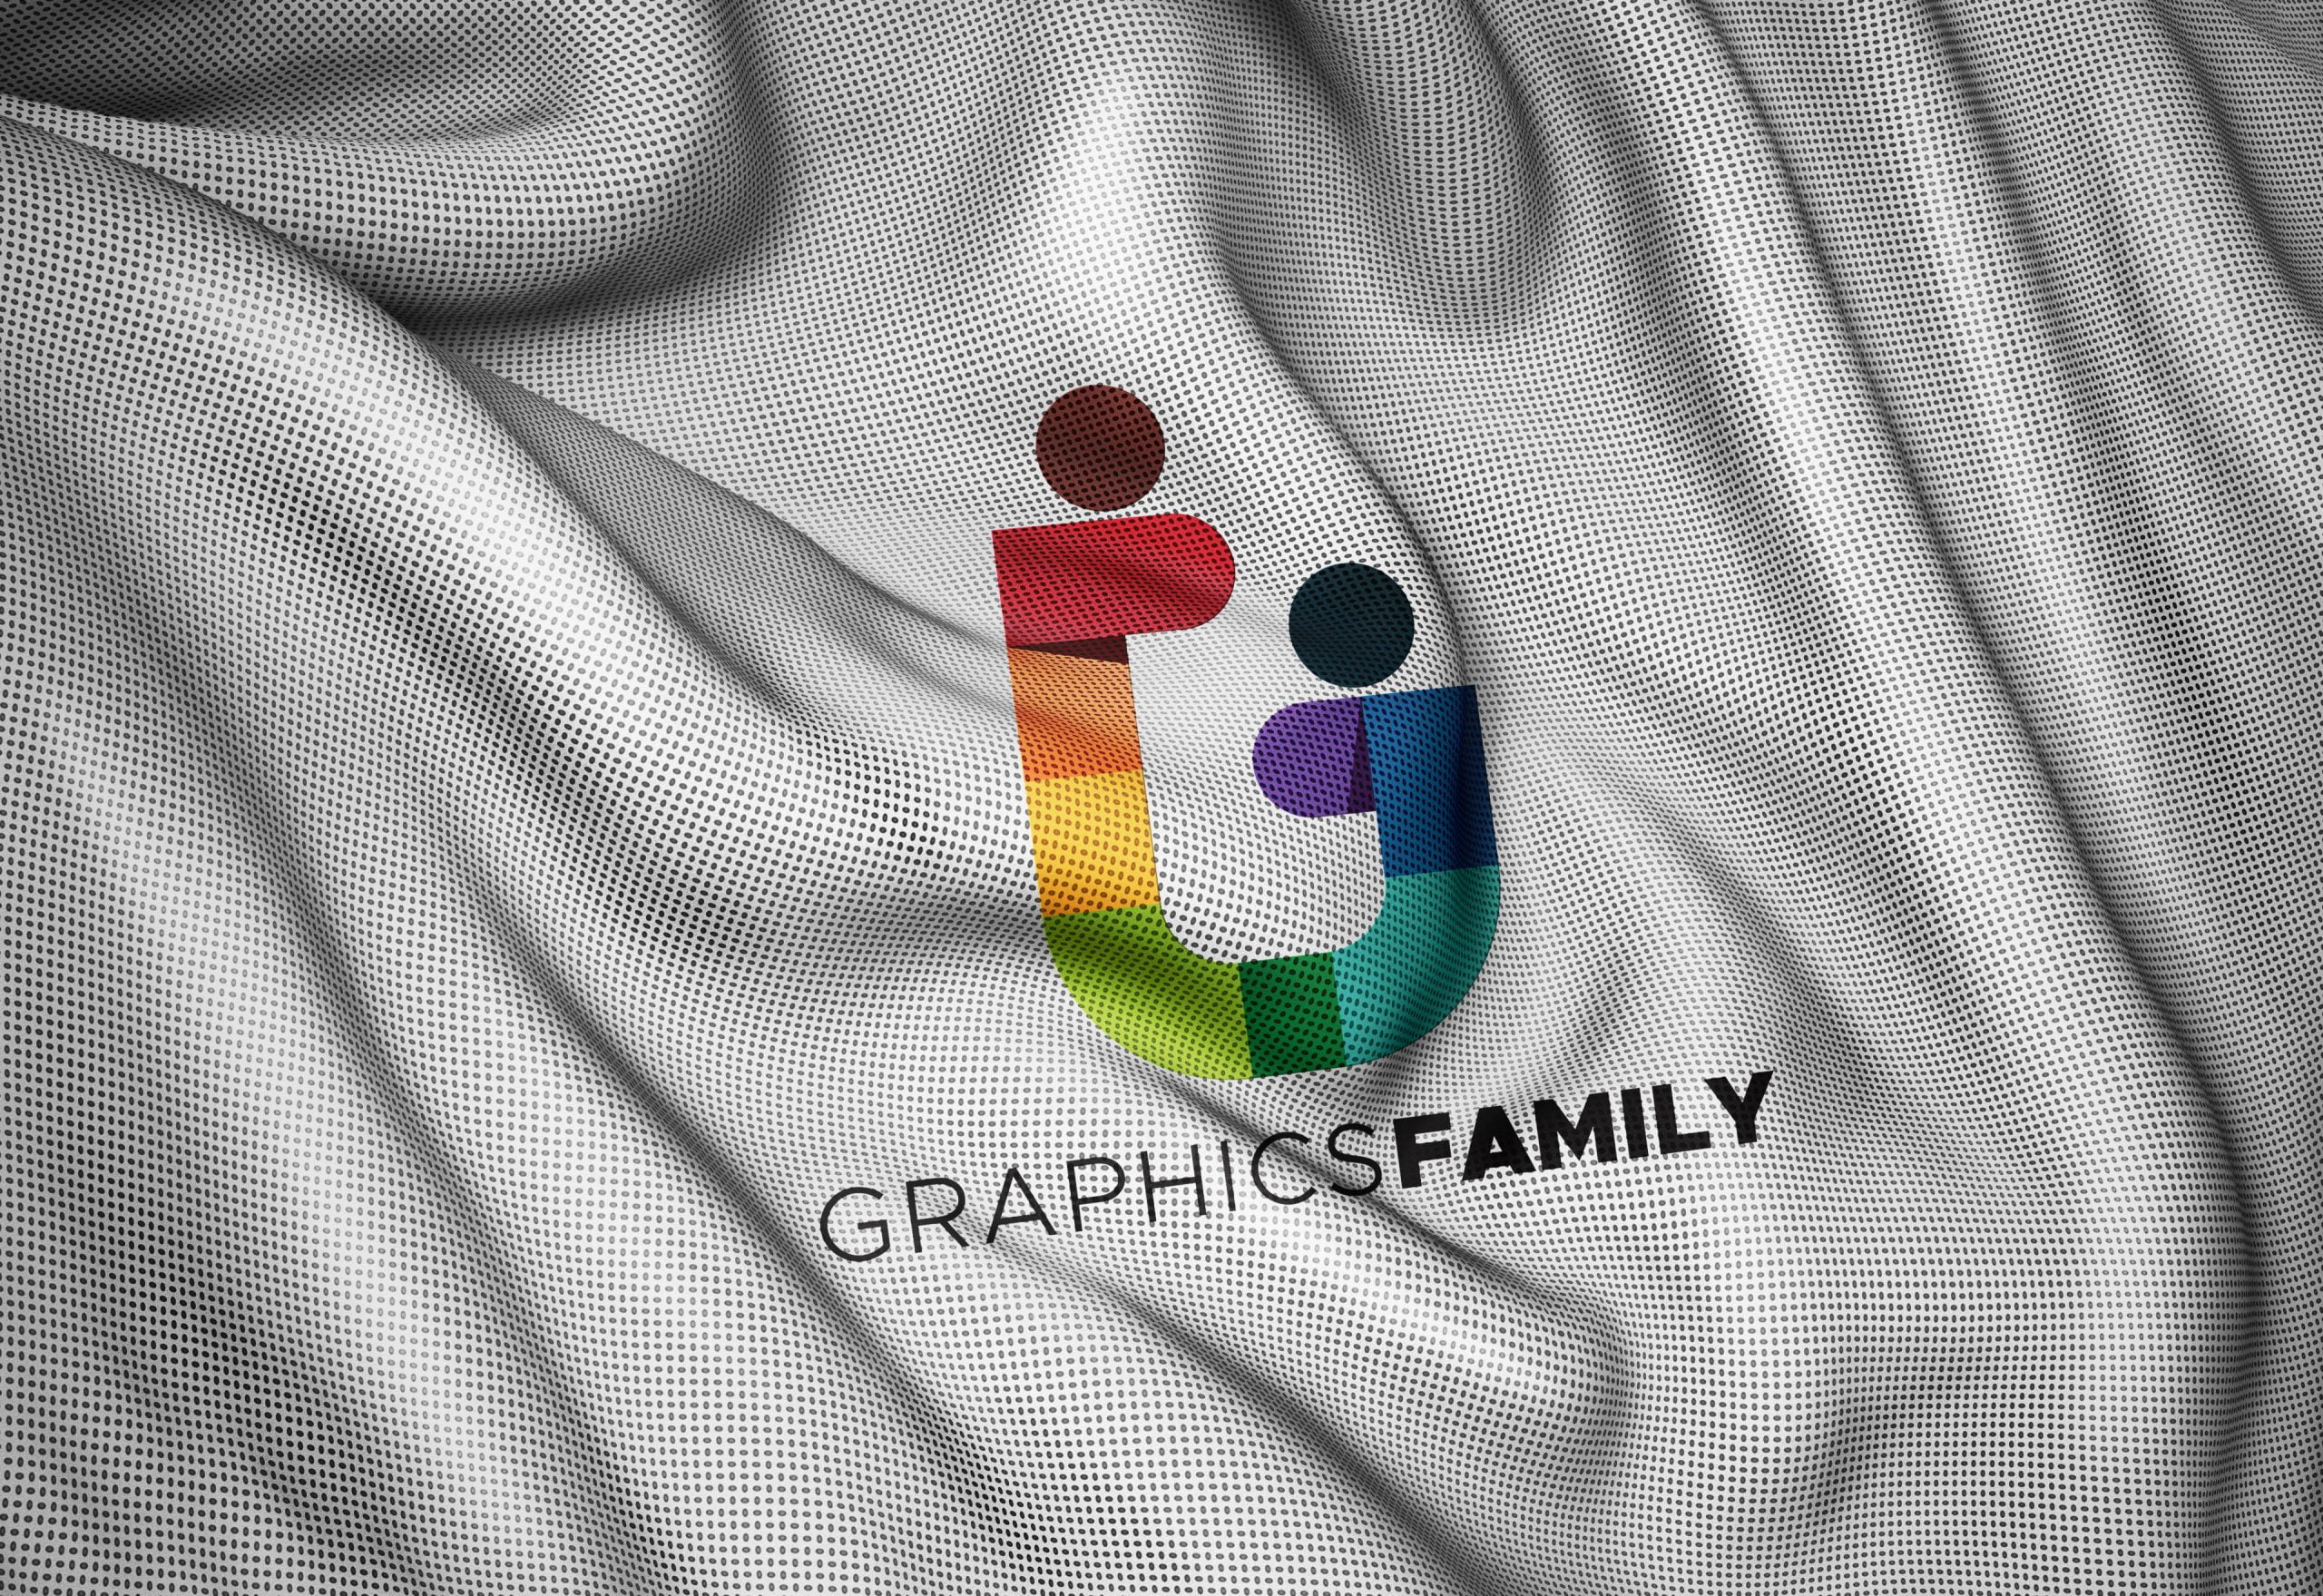 Free-Download-Sports-Jersey-Fabric-Texture-Photoshop-Logo-Mockup-by-GraphicsFamily